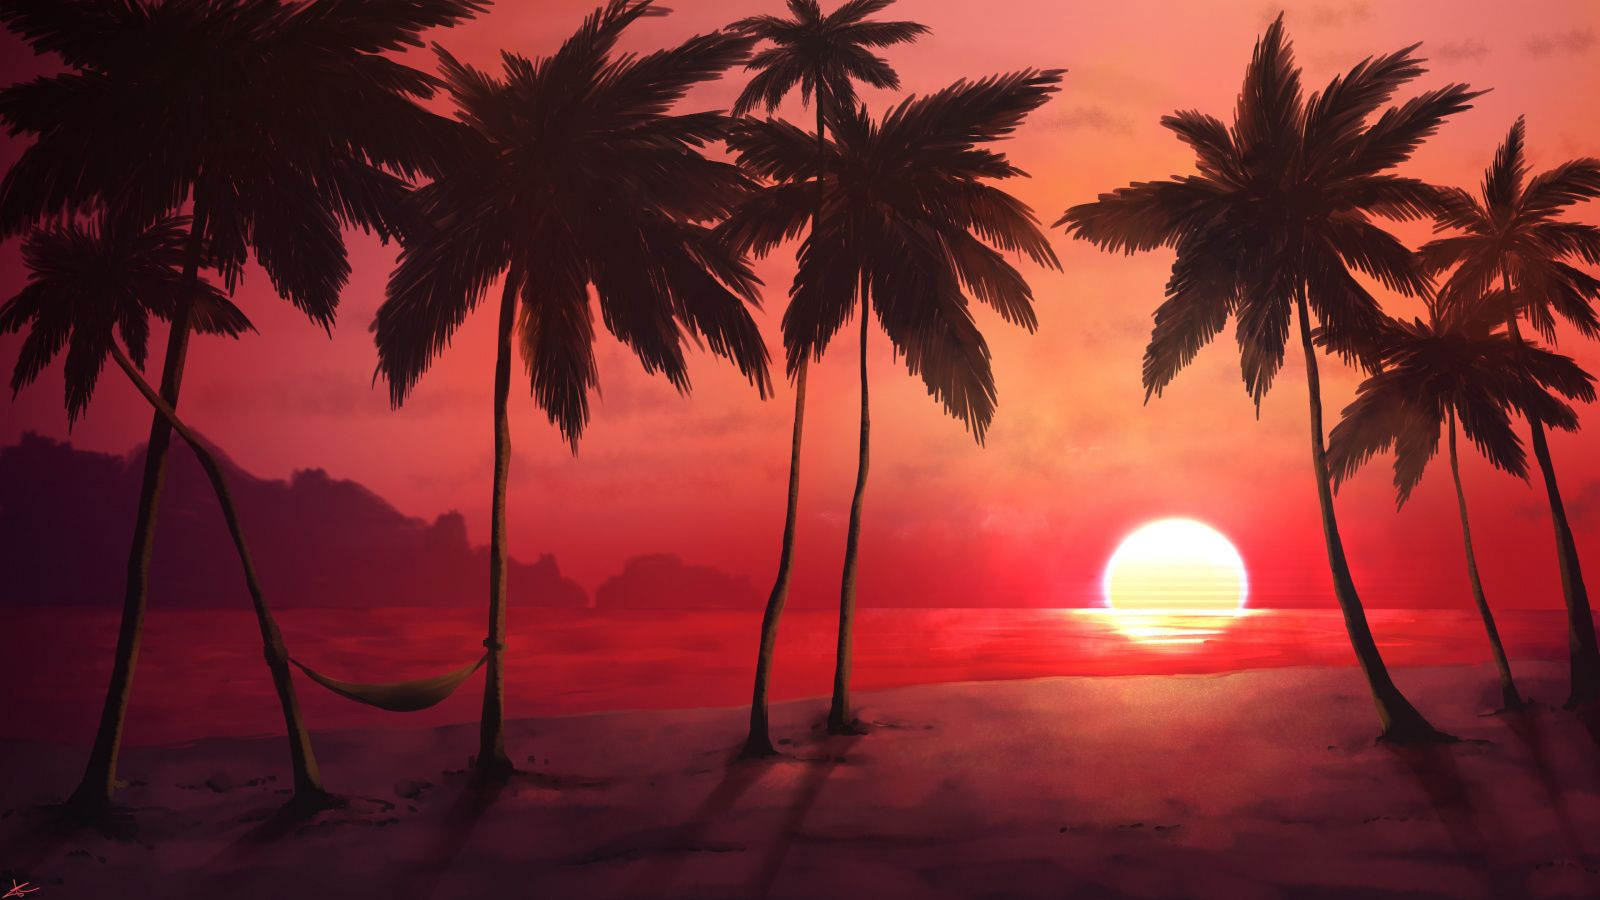 600x900 Sunset Tropical Beach Palm Trees Wallpaper Beach Sunset Wallpaper Sunset Wallpaper Palm Trees Wallpaper